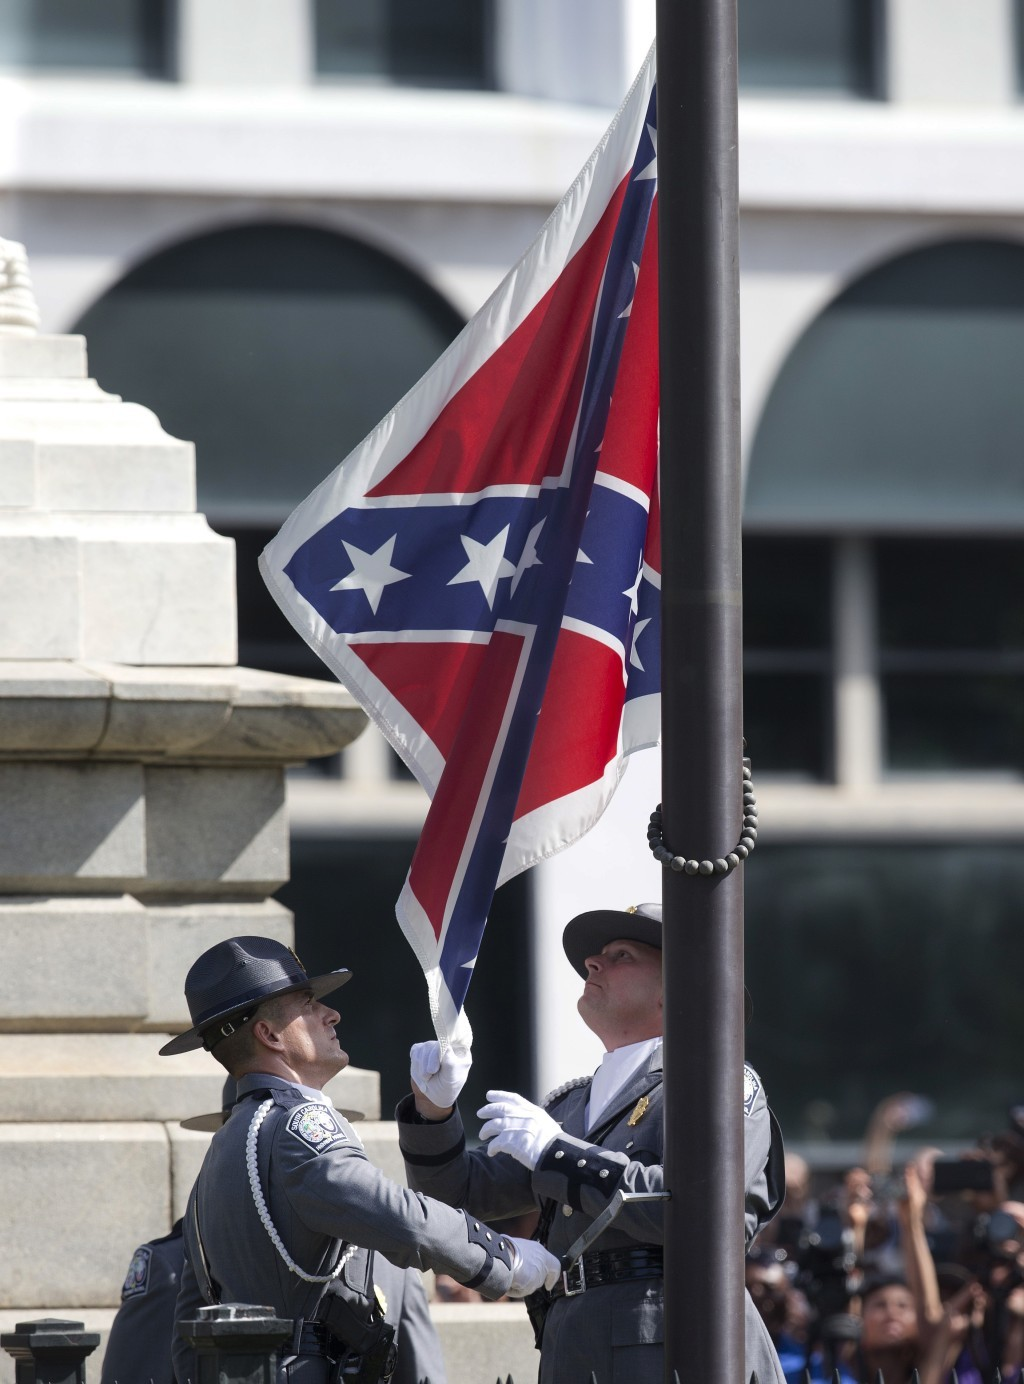 FILE - In this July 10, 2015 file photo, an honor guard from the South Carolina Highway patrol removes the Confederate battle flag from the Capitol gr...